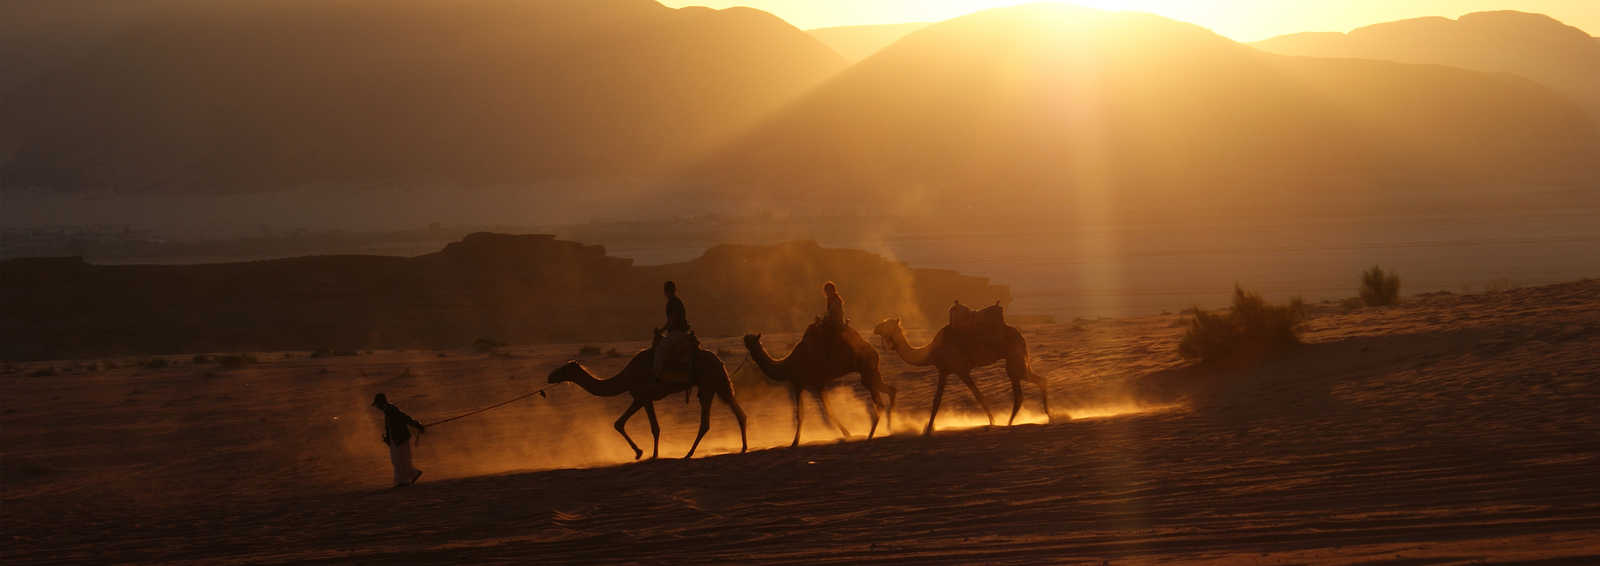 Sunrise in the Wadi Rum, Jordan